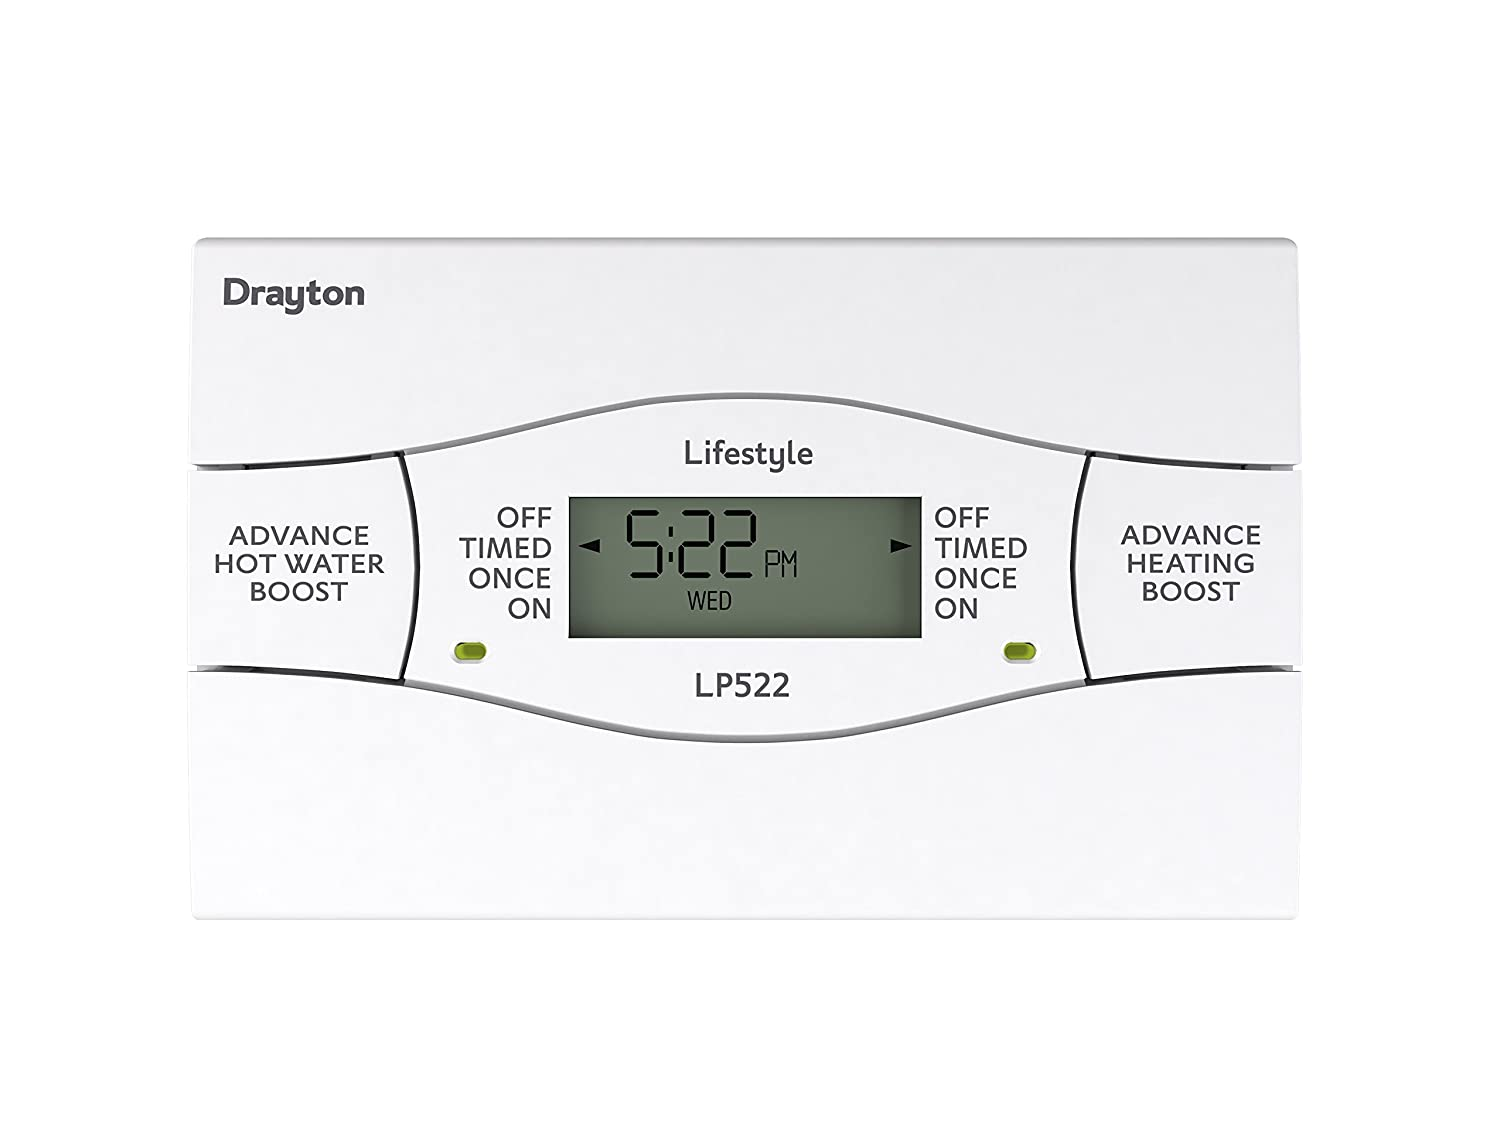 Drayton LP522 LP522 5/2 Day Heating and Hot Water Programmer Channel 123070